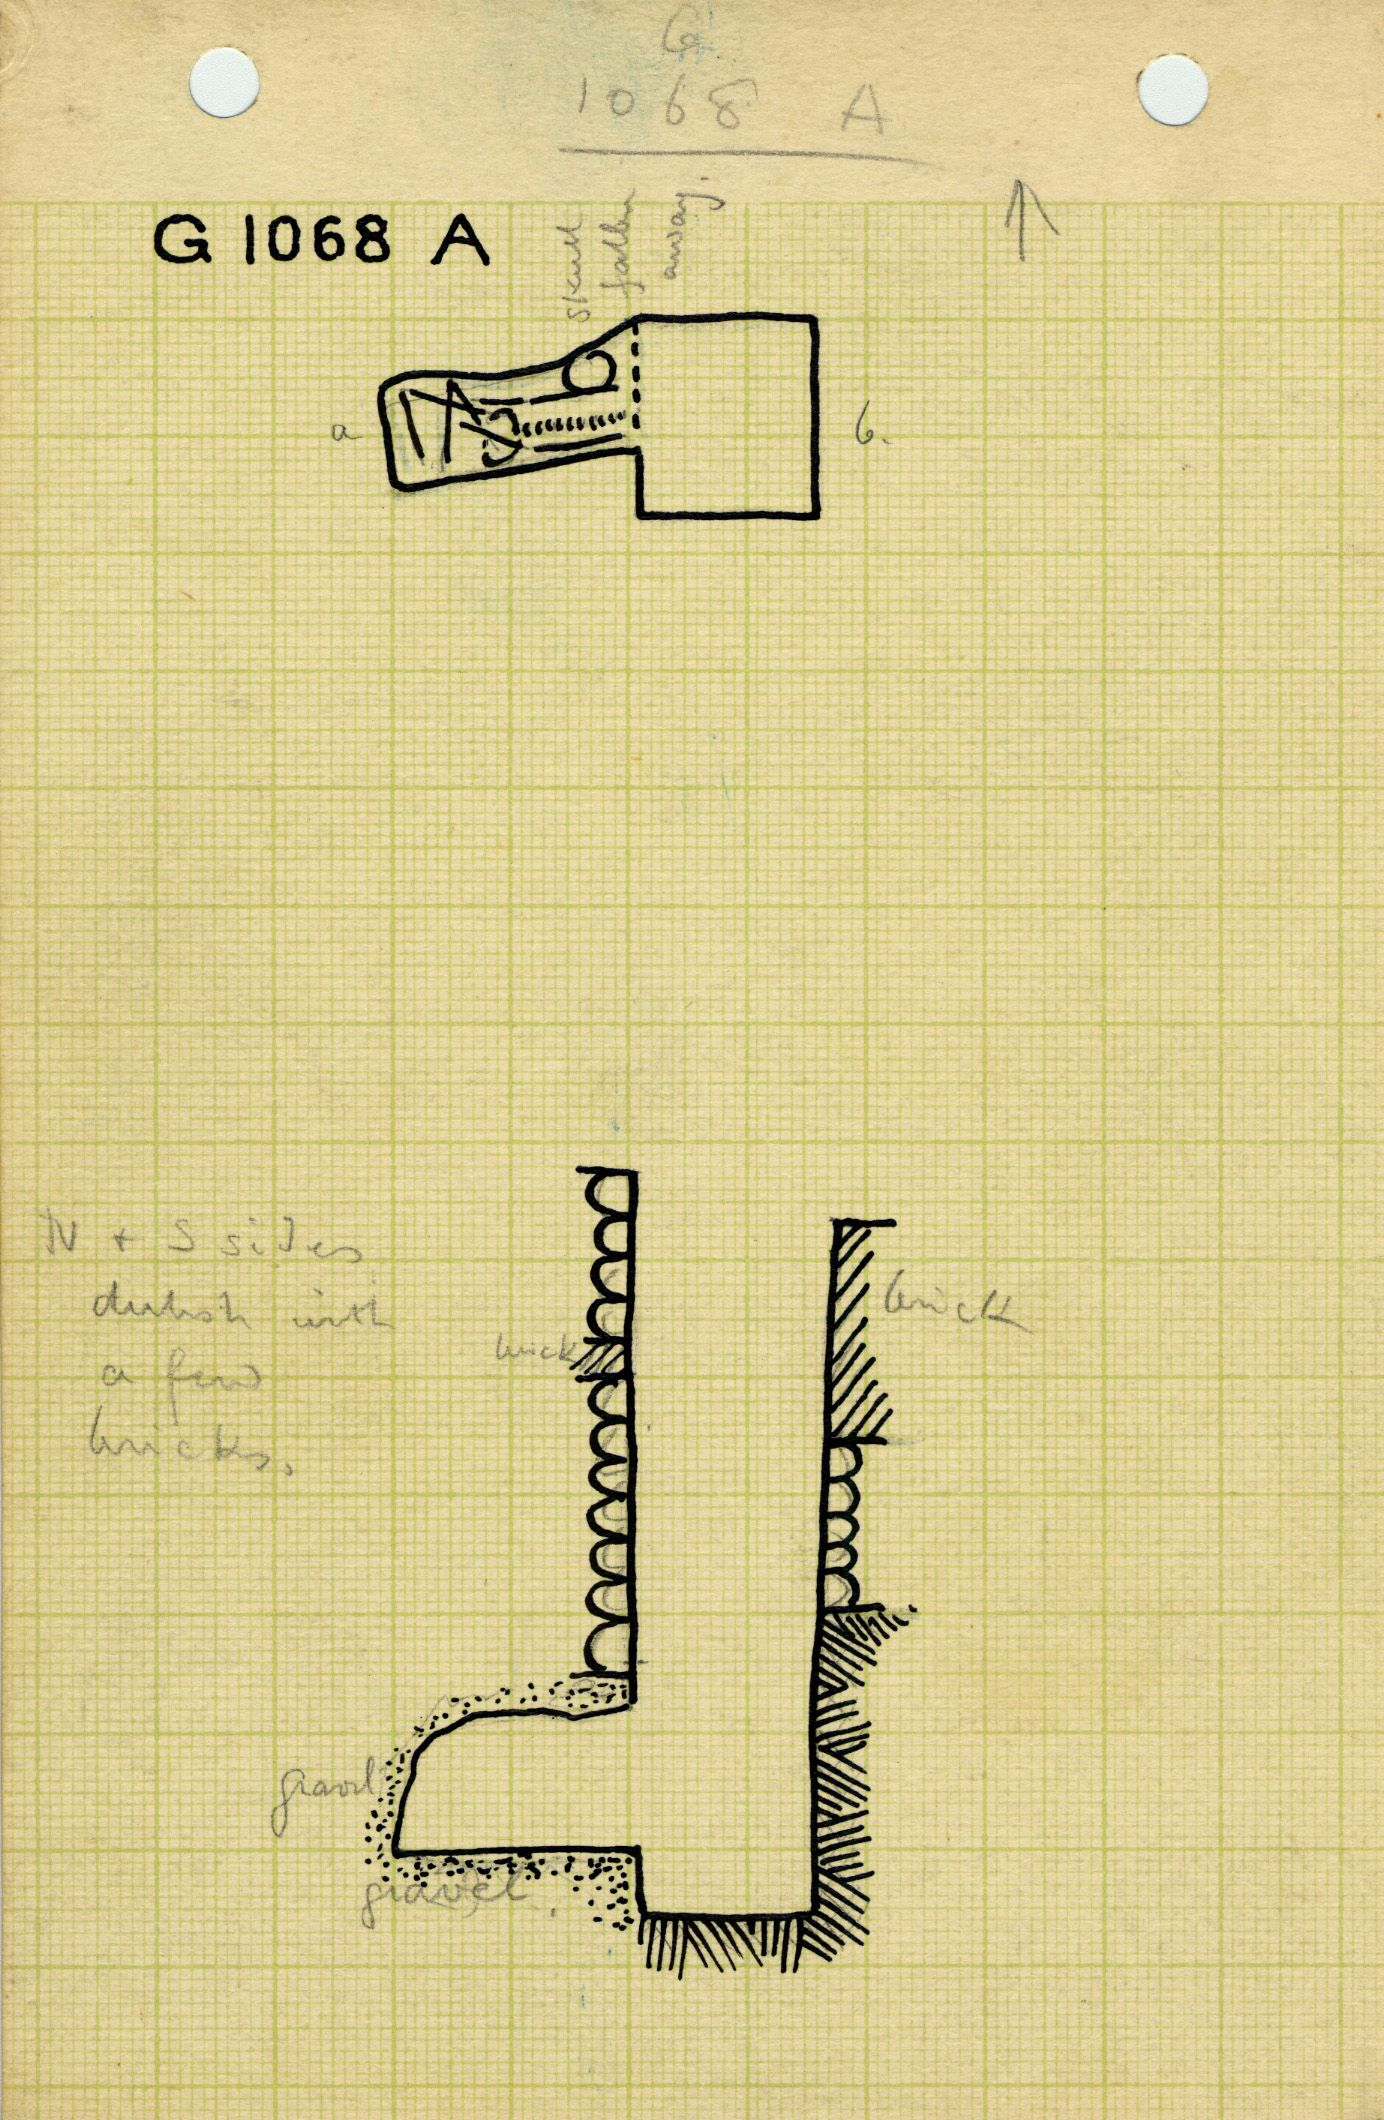 Maps and plans: G 1068, Shaft A